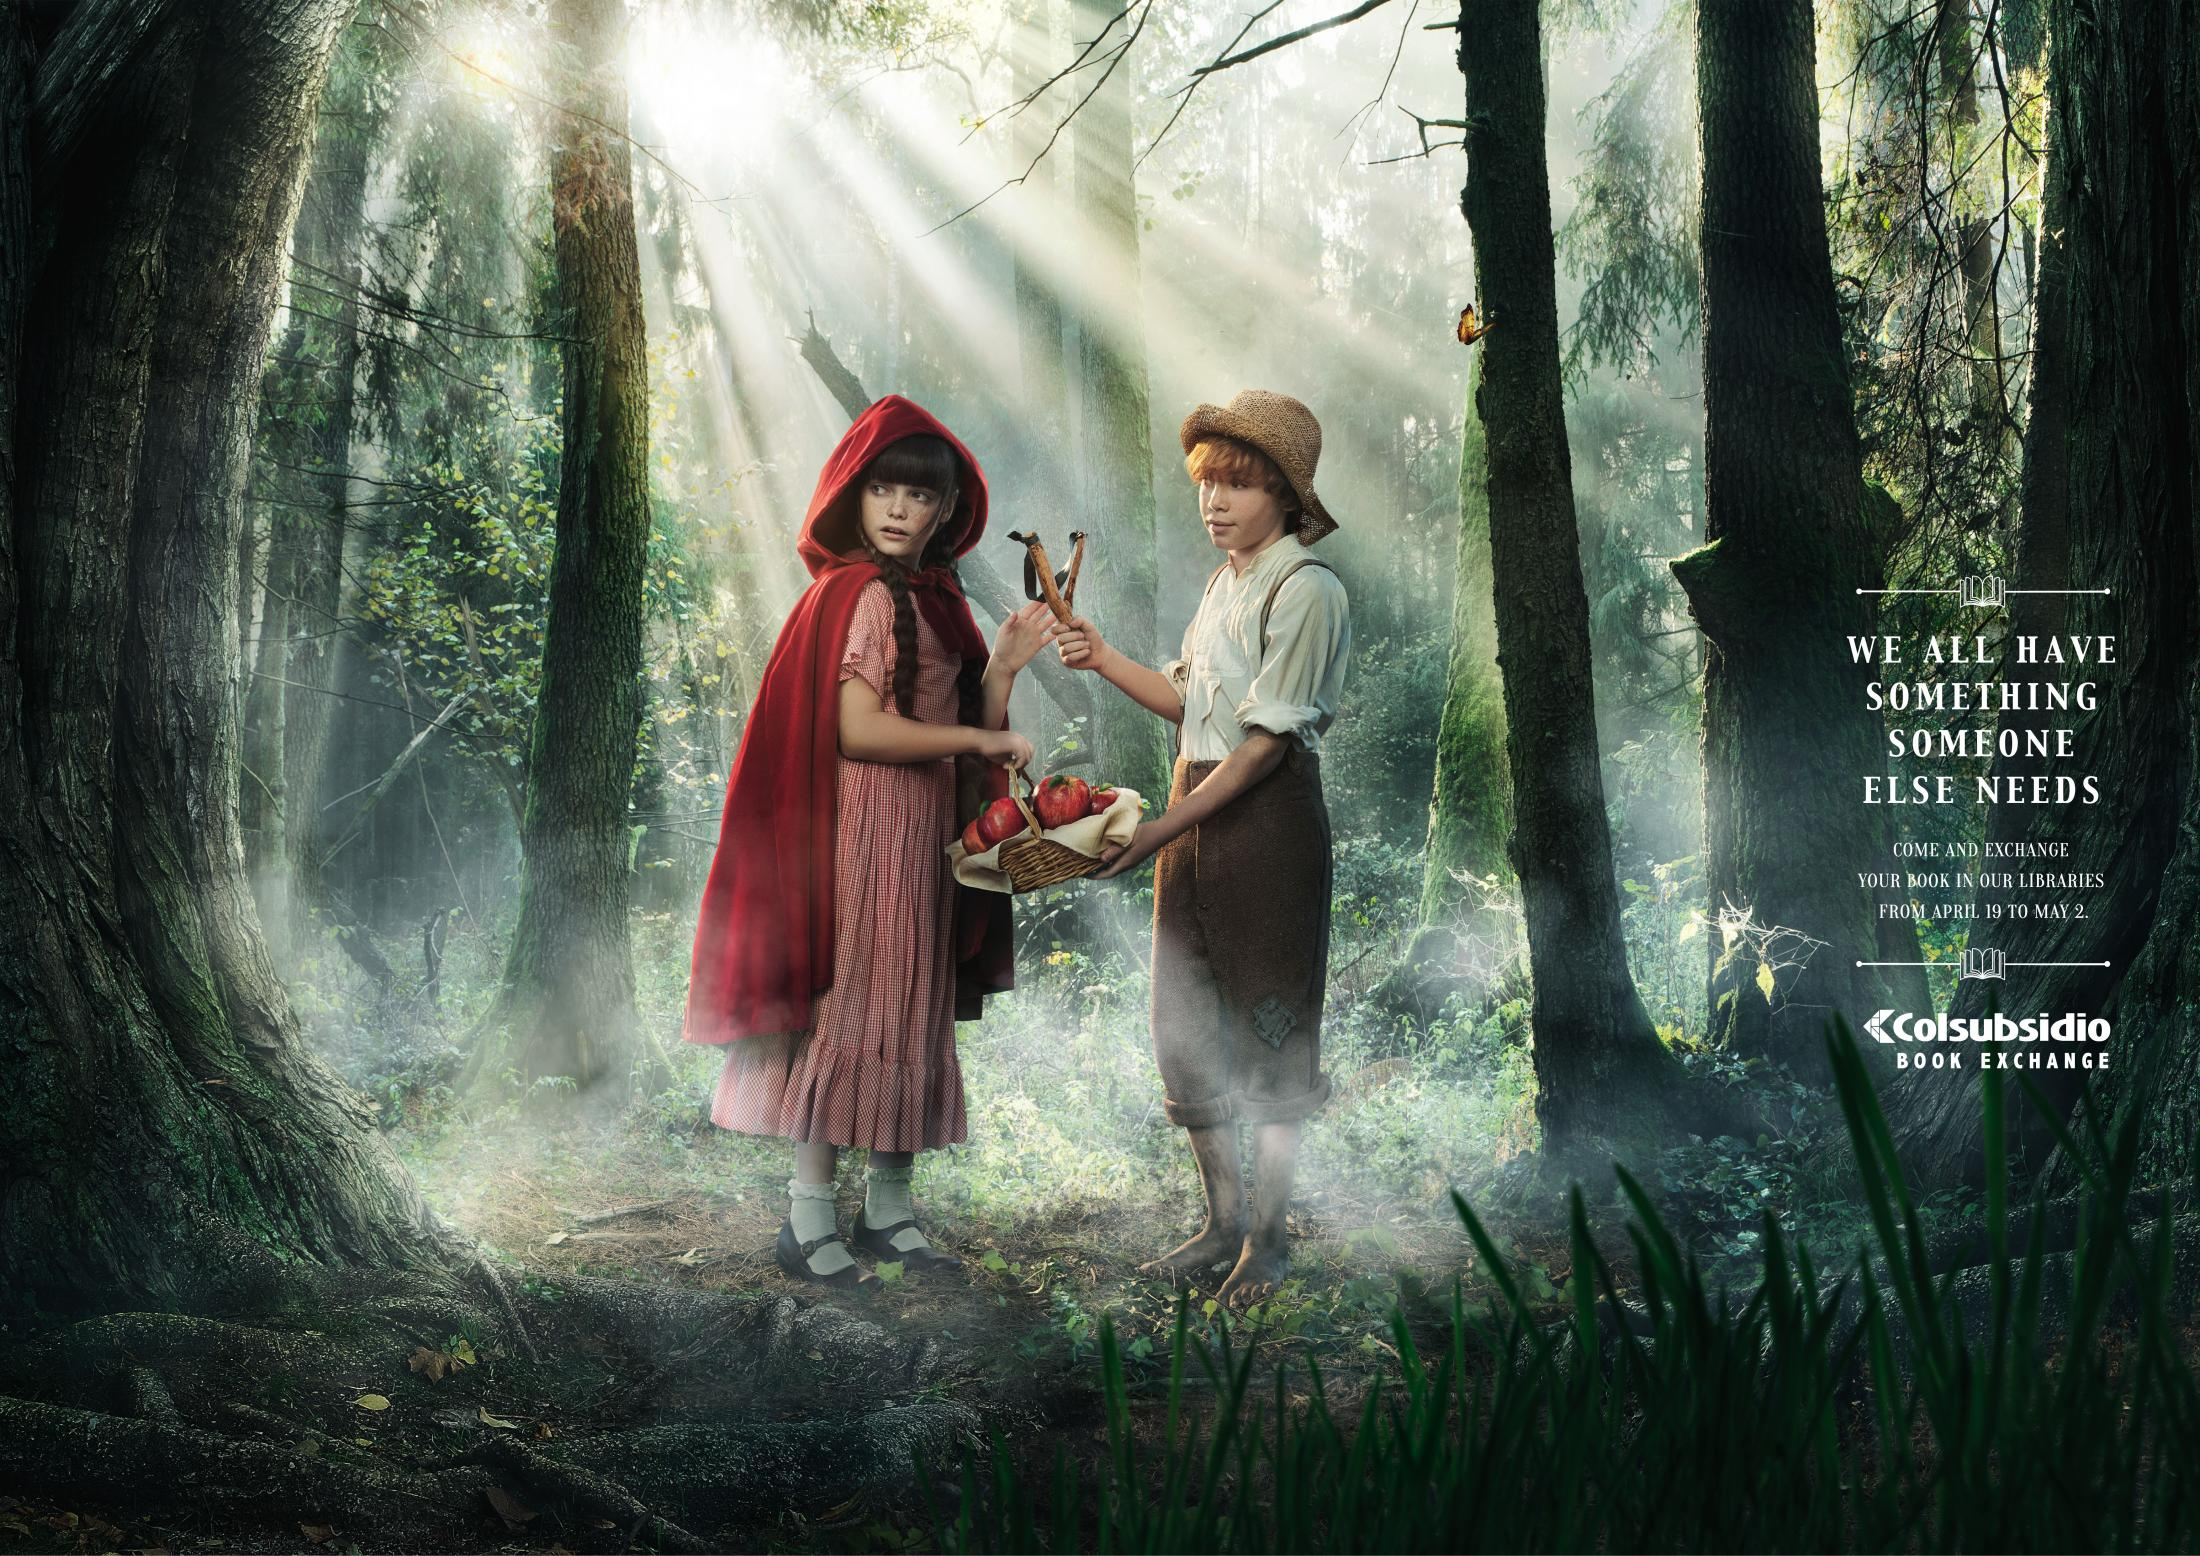 Thumbnail for Exchanges - the little red riding hood/Tom Sawyer